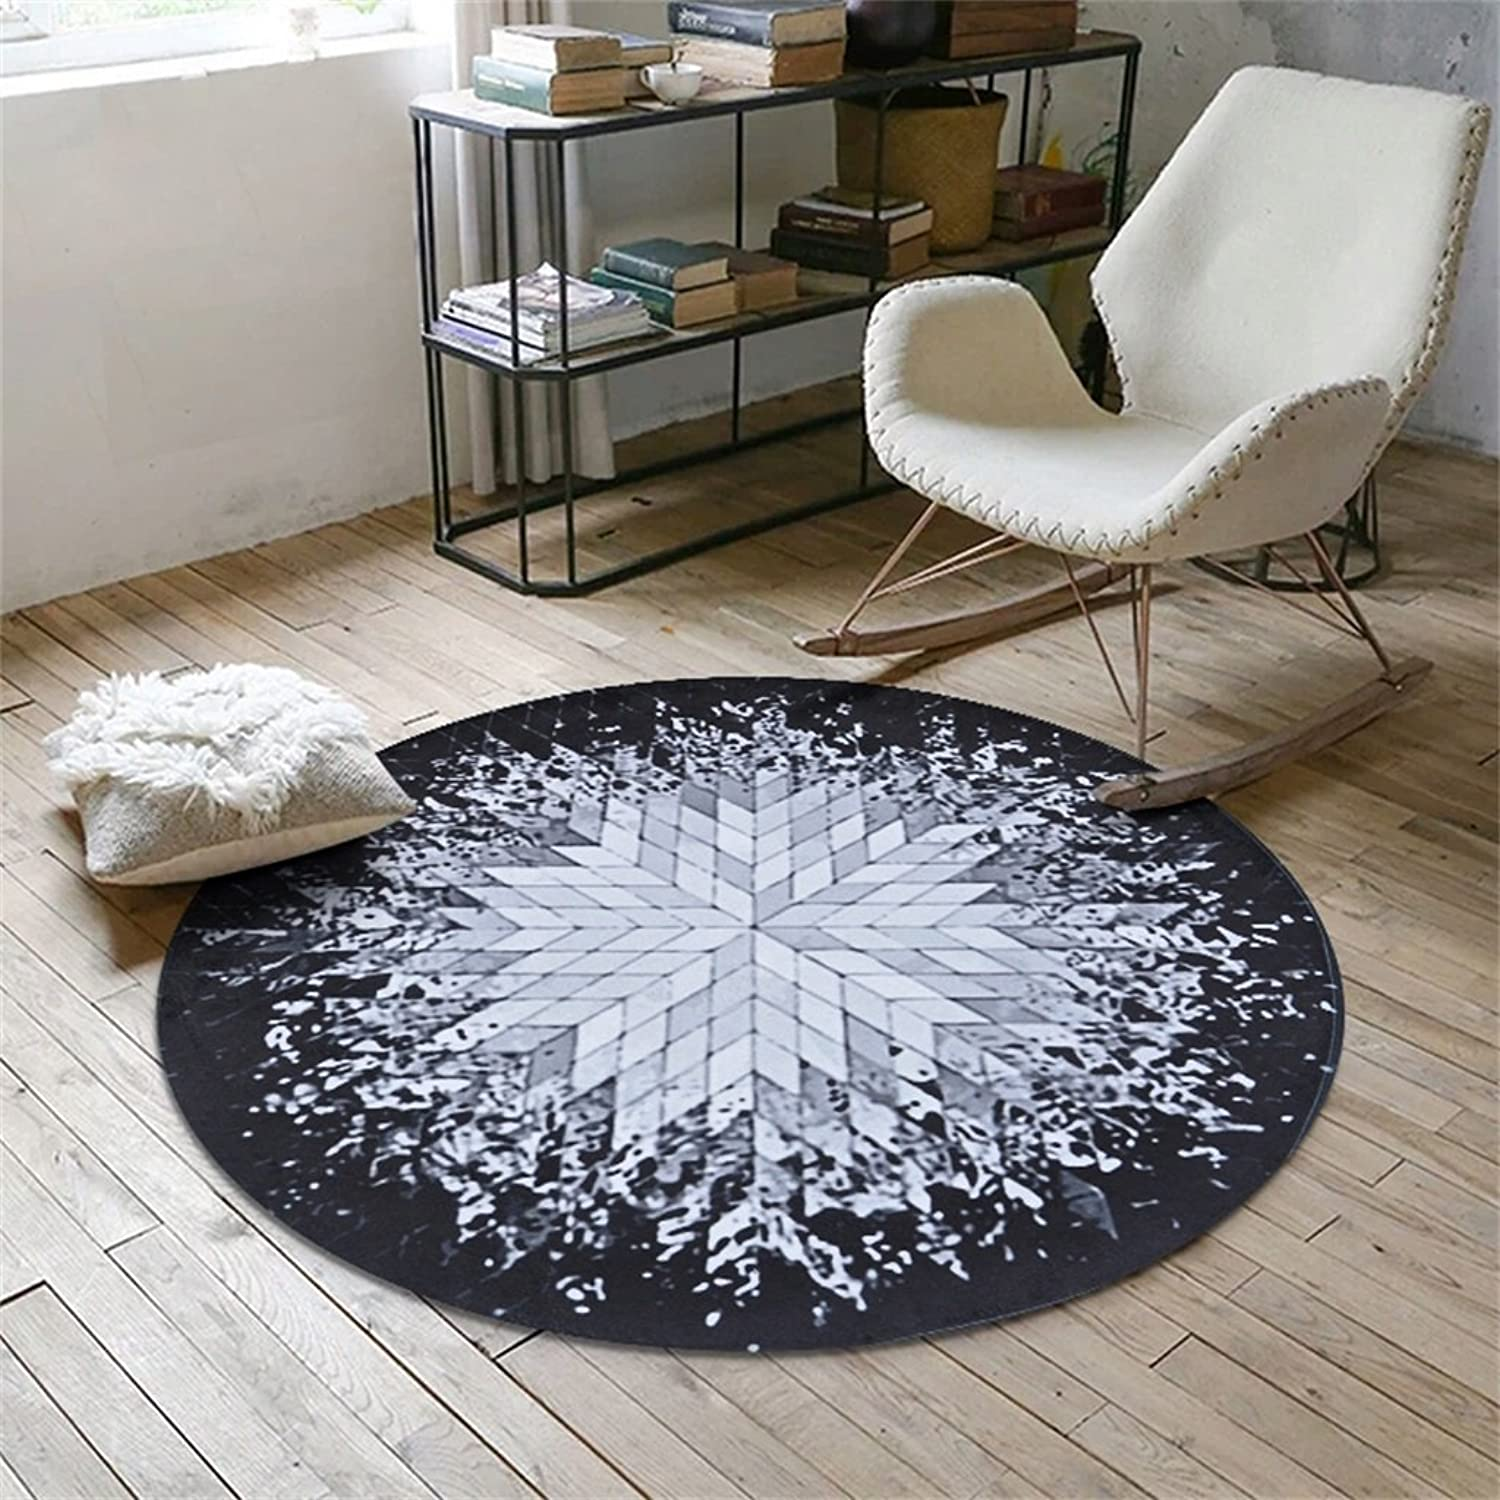 Royare Home Decorations mat Rugs Nortic Round Rug American Style Living Room Sofa Tea Table Mats Baby Crawling Mat Living Room Bedroom Study Room Restaurant Pad (color   A, Size   Diameter 100cm)